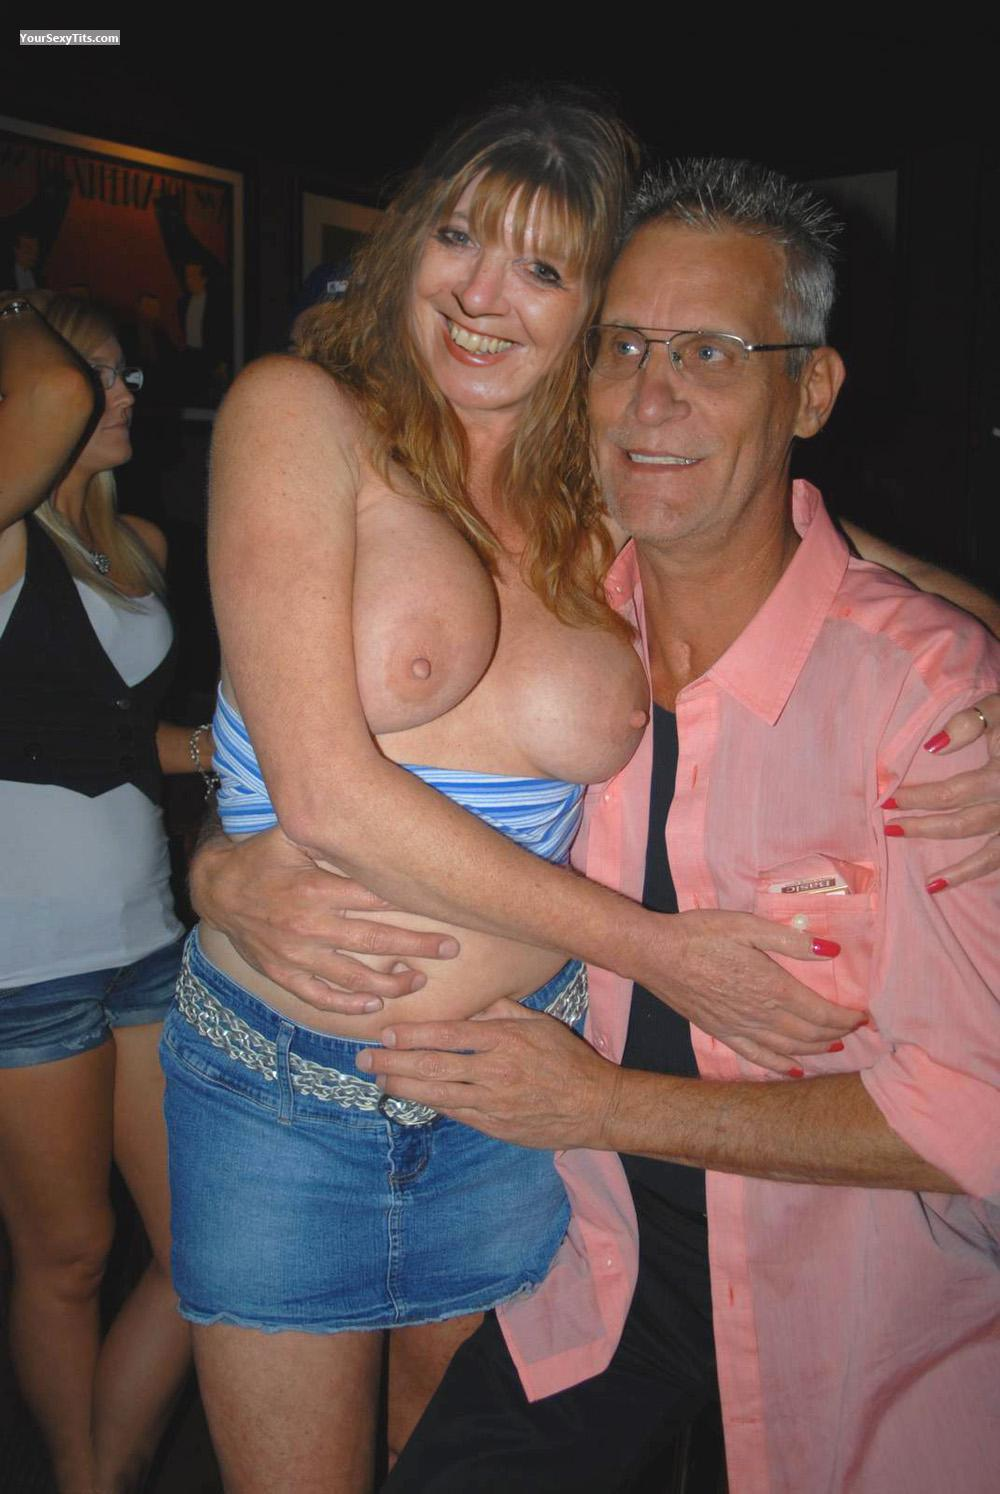 Tit Flash: Medium Tits - Topless Jane from United Kingdom